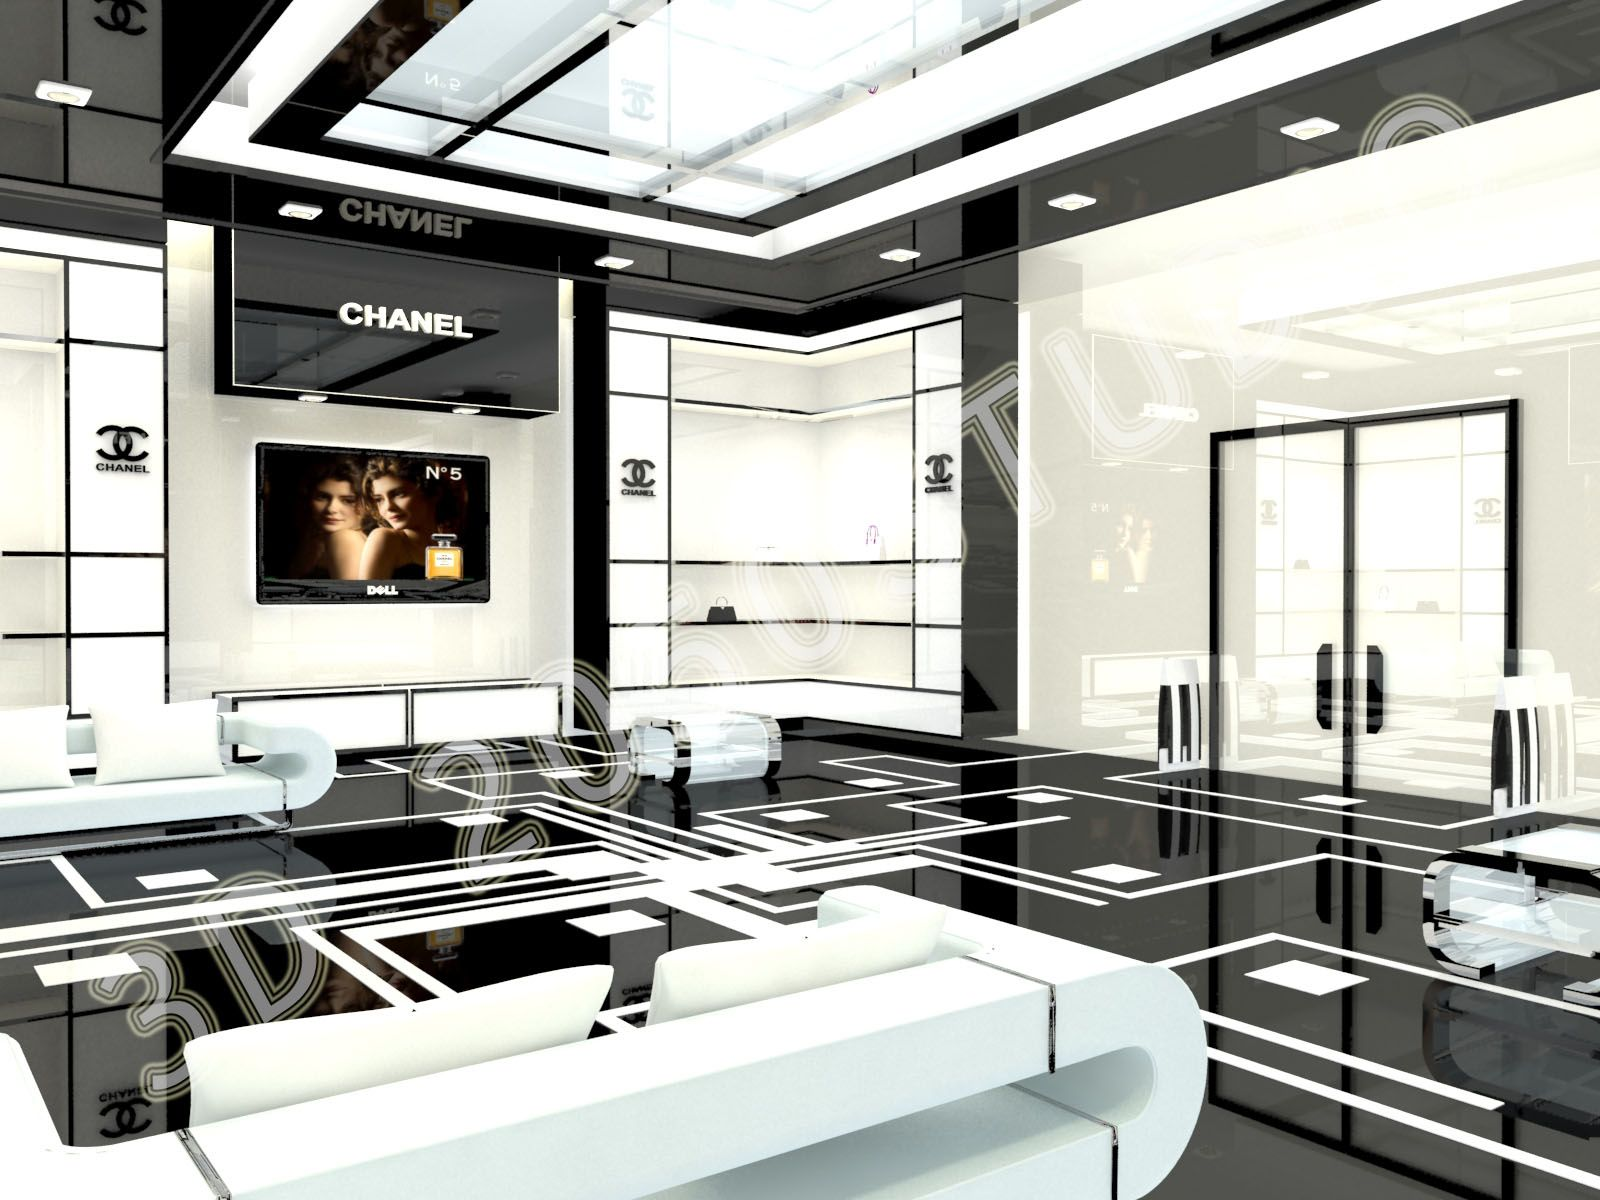 chanel boston store interior - Google Search | Chanel | Pinterest ...